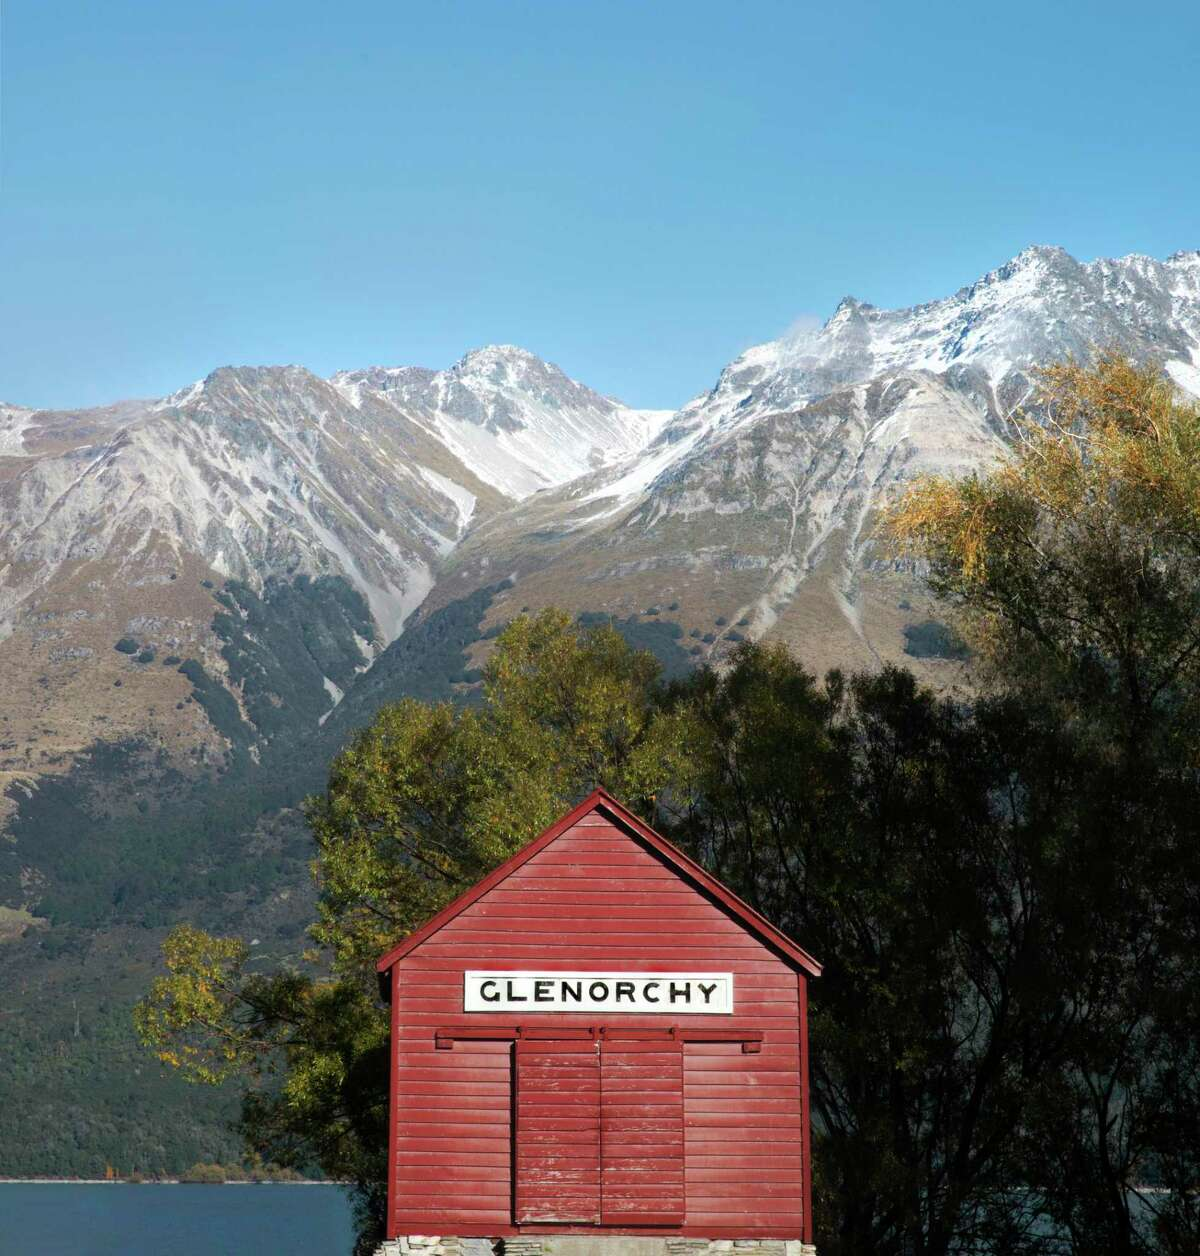 Wharf Shed in Glenorchy, New Zealand, photographed by Frida Berg for the book